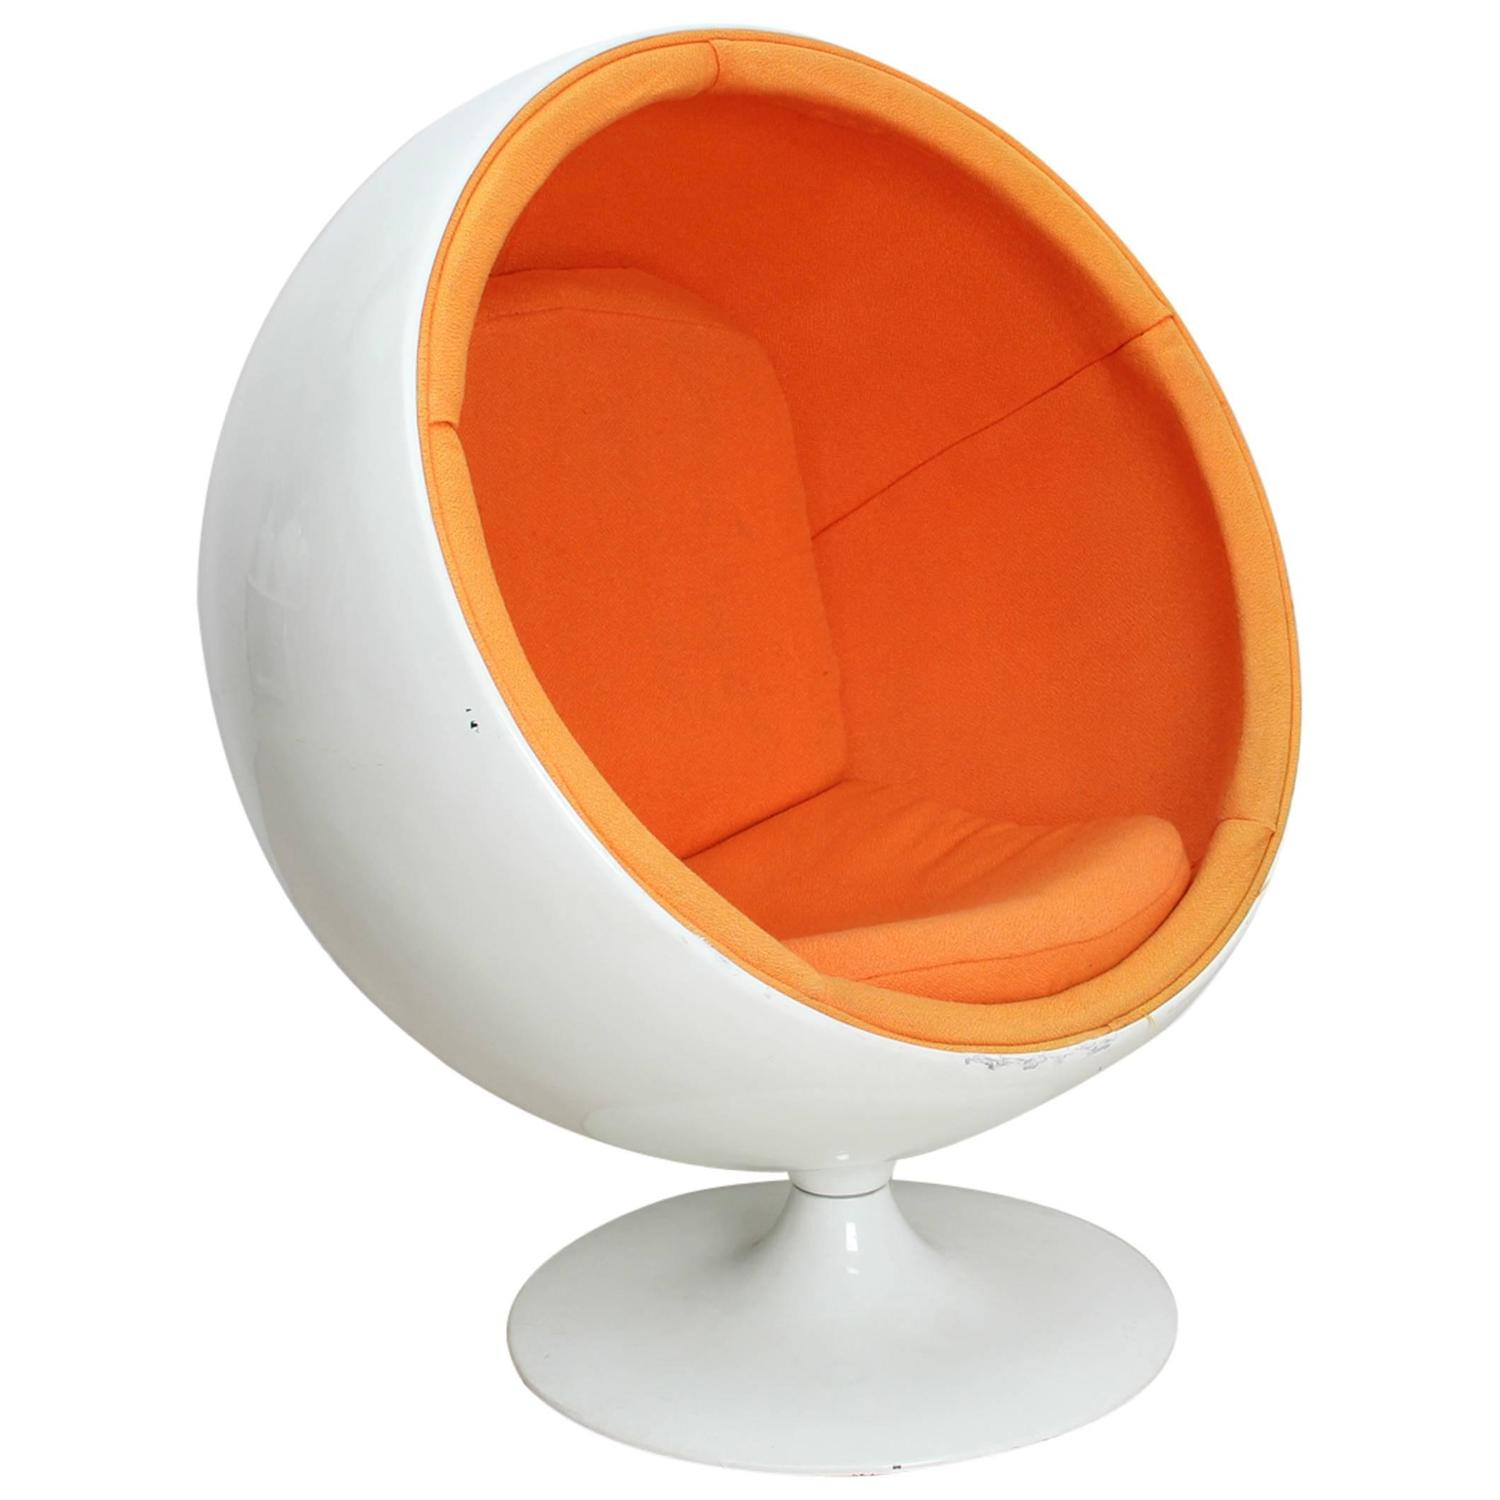 Merveilleux Ball Chair For Kids By Eero Aarnio Ed. Adelta, 1963 For Sale At 1stdibs